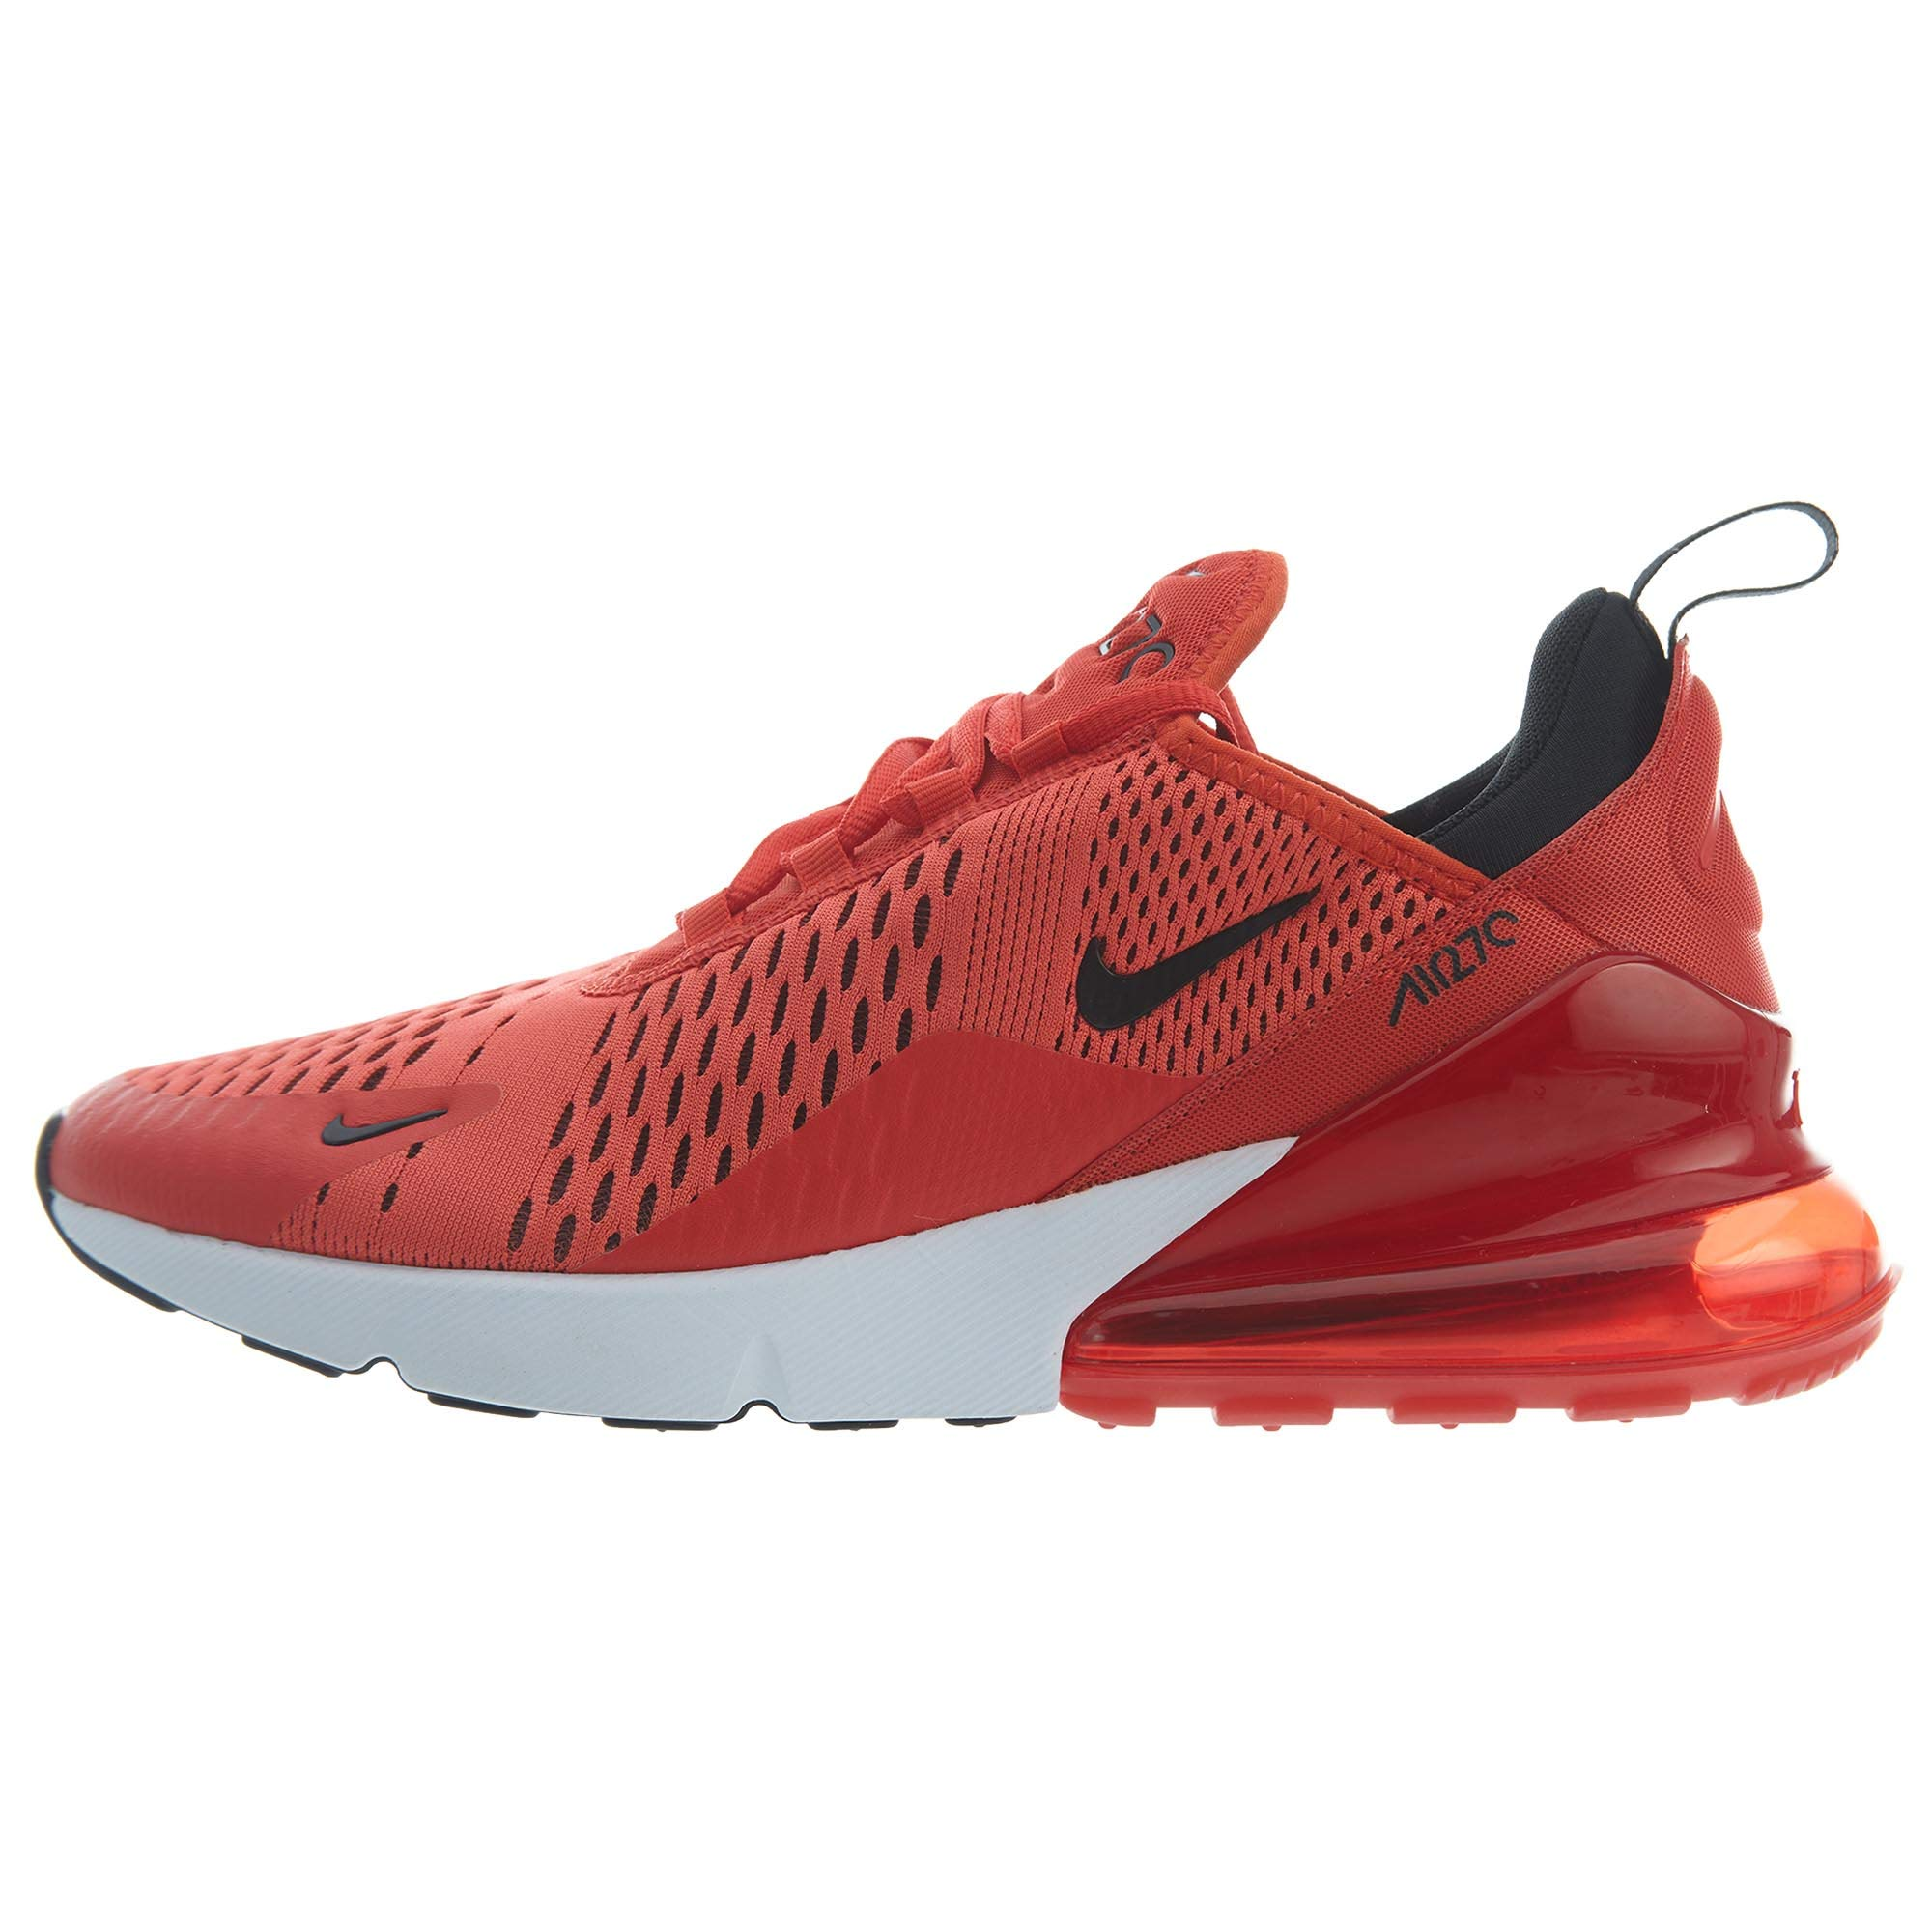 reputable site 4fe71 5df8d Galleon - Nike Air Max 270 - US 10